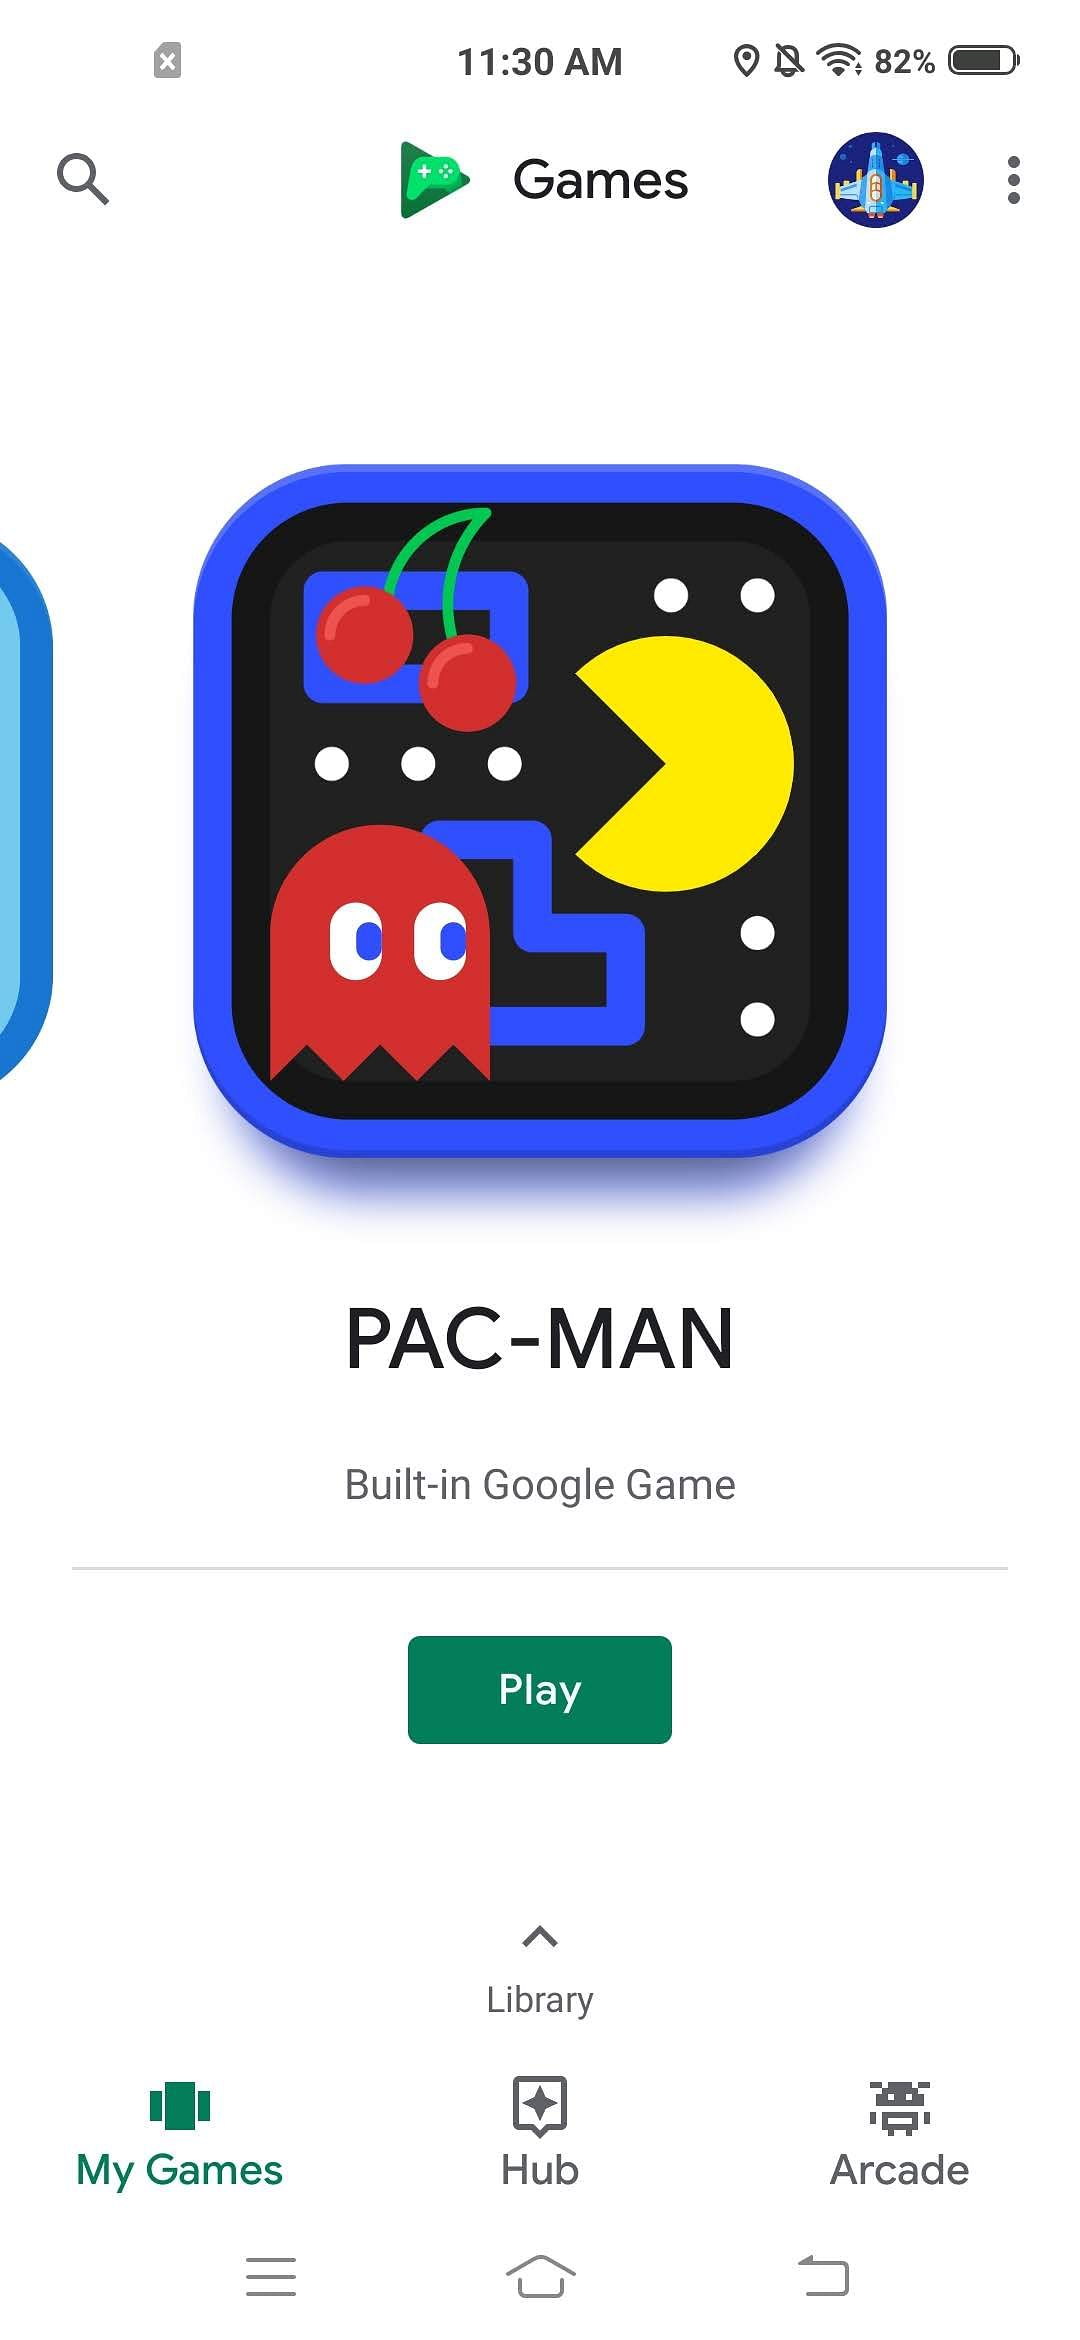 Google play Games features the popular arcade game Pac-Man.